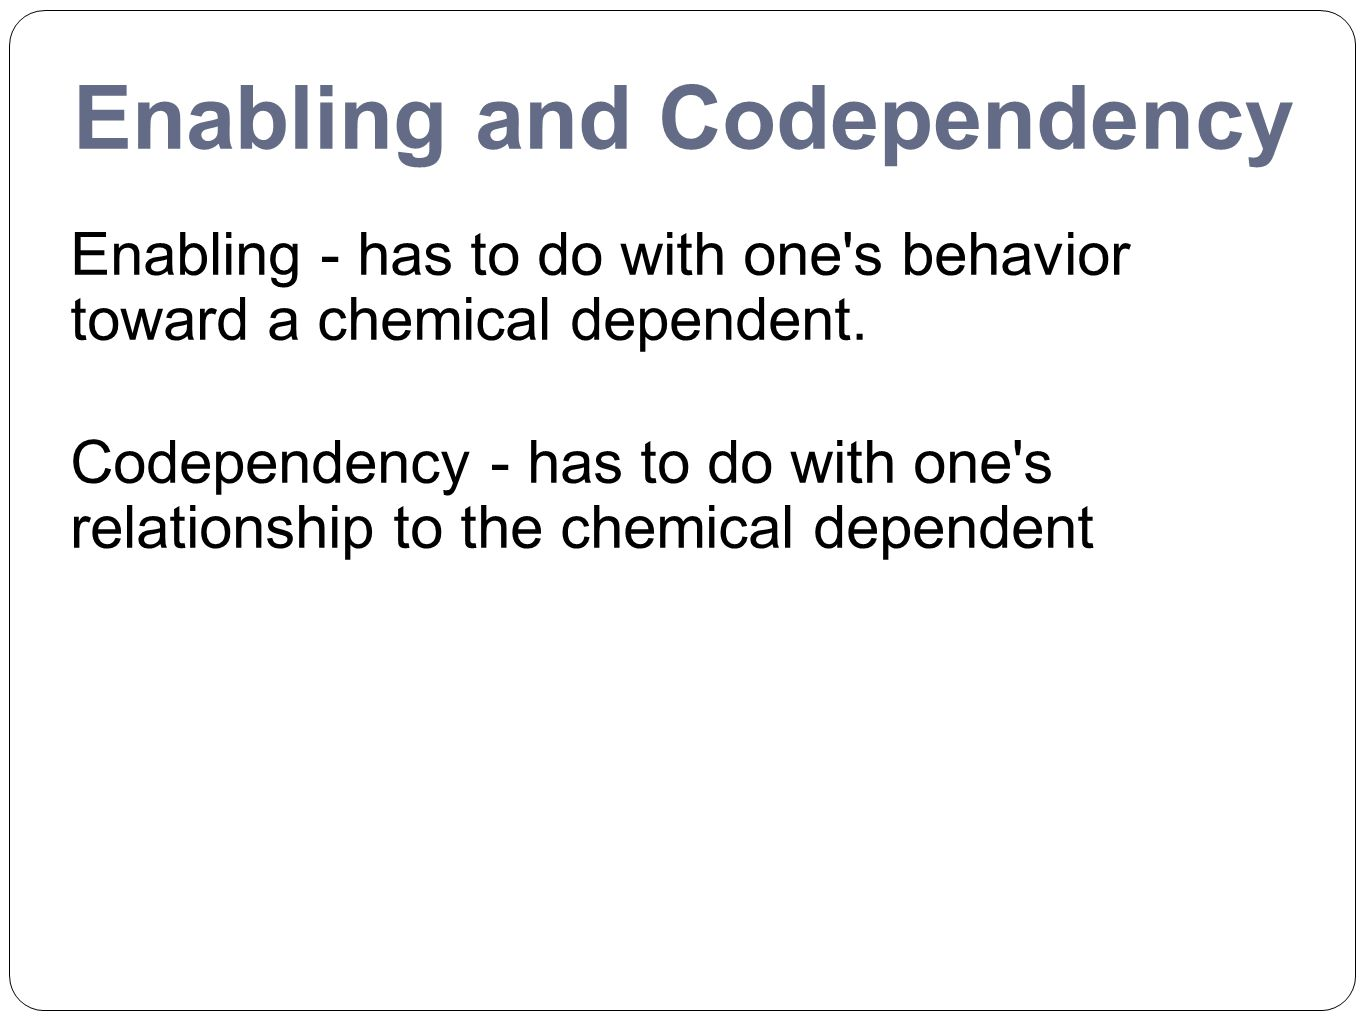 Enabling and Codependency Enabling - has to do with one's behavior toward a chemical dependent. Codependency - has to do with one's relationship to th